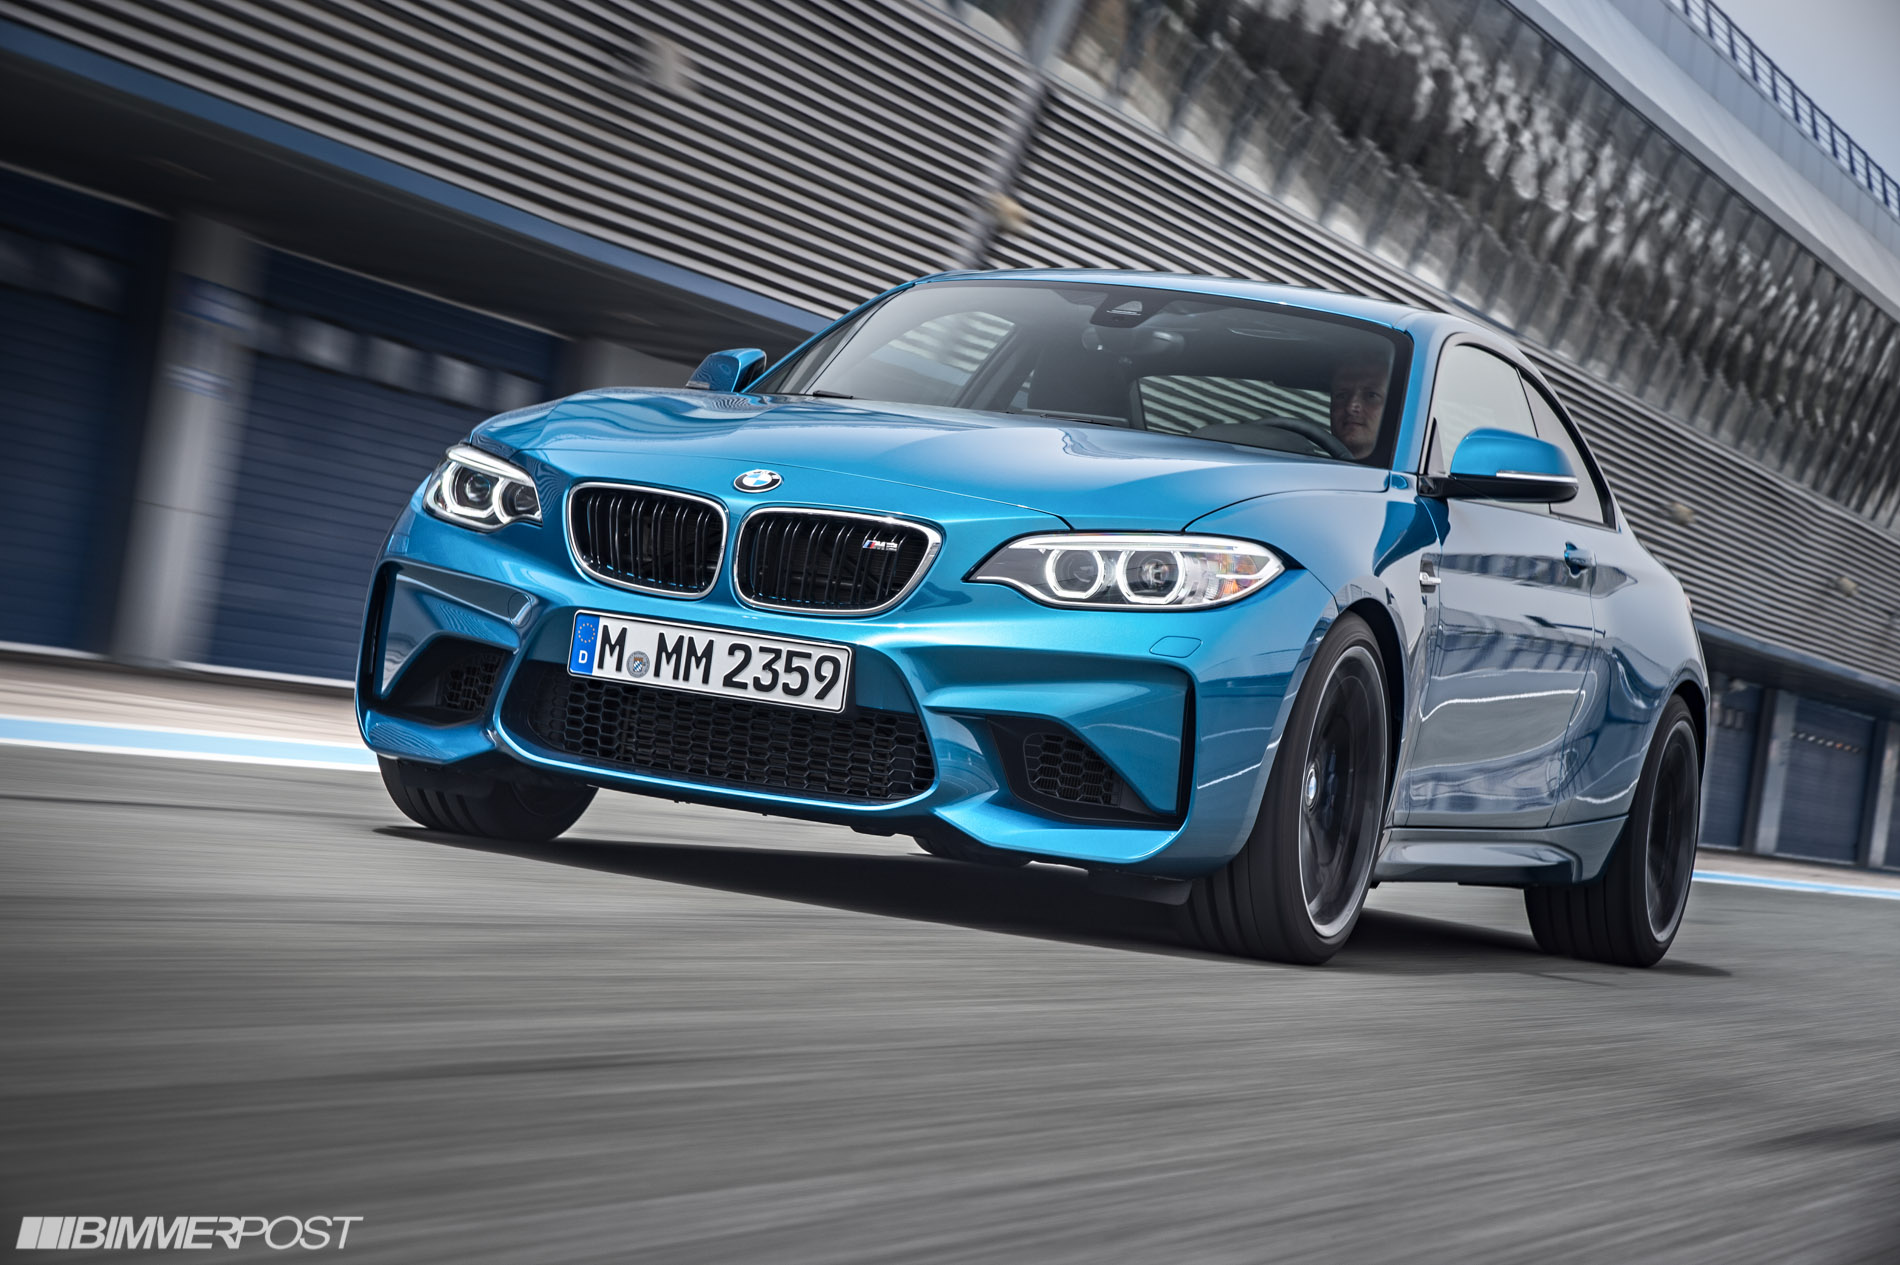 2016 - [BMW] M2 [F87] - Page 7 P90199685_highRes